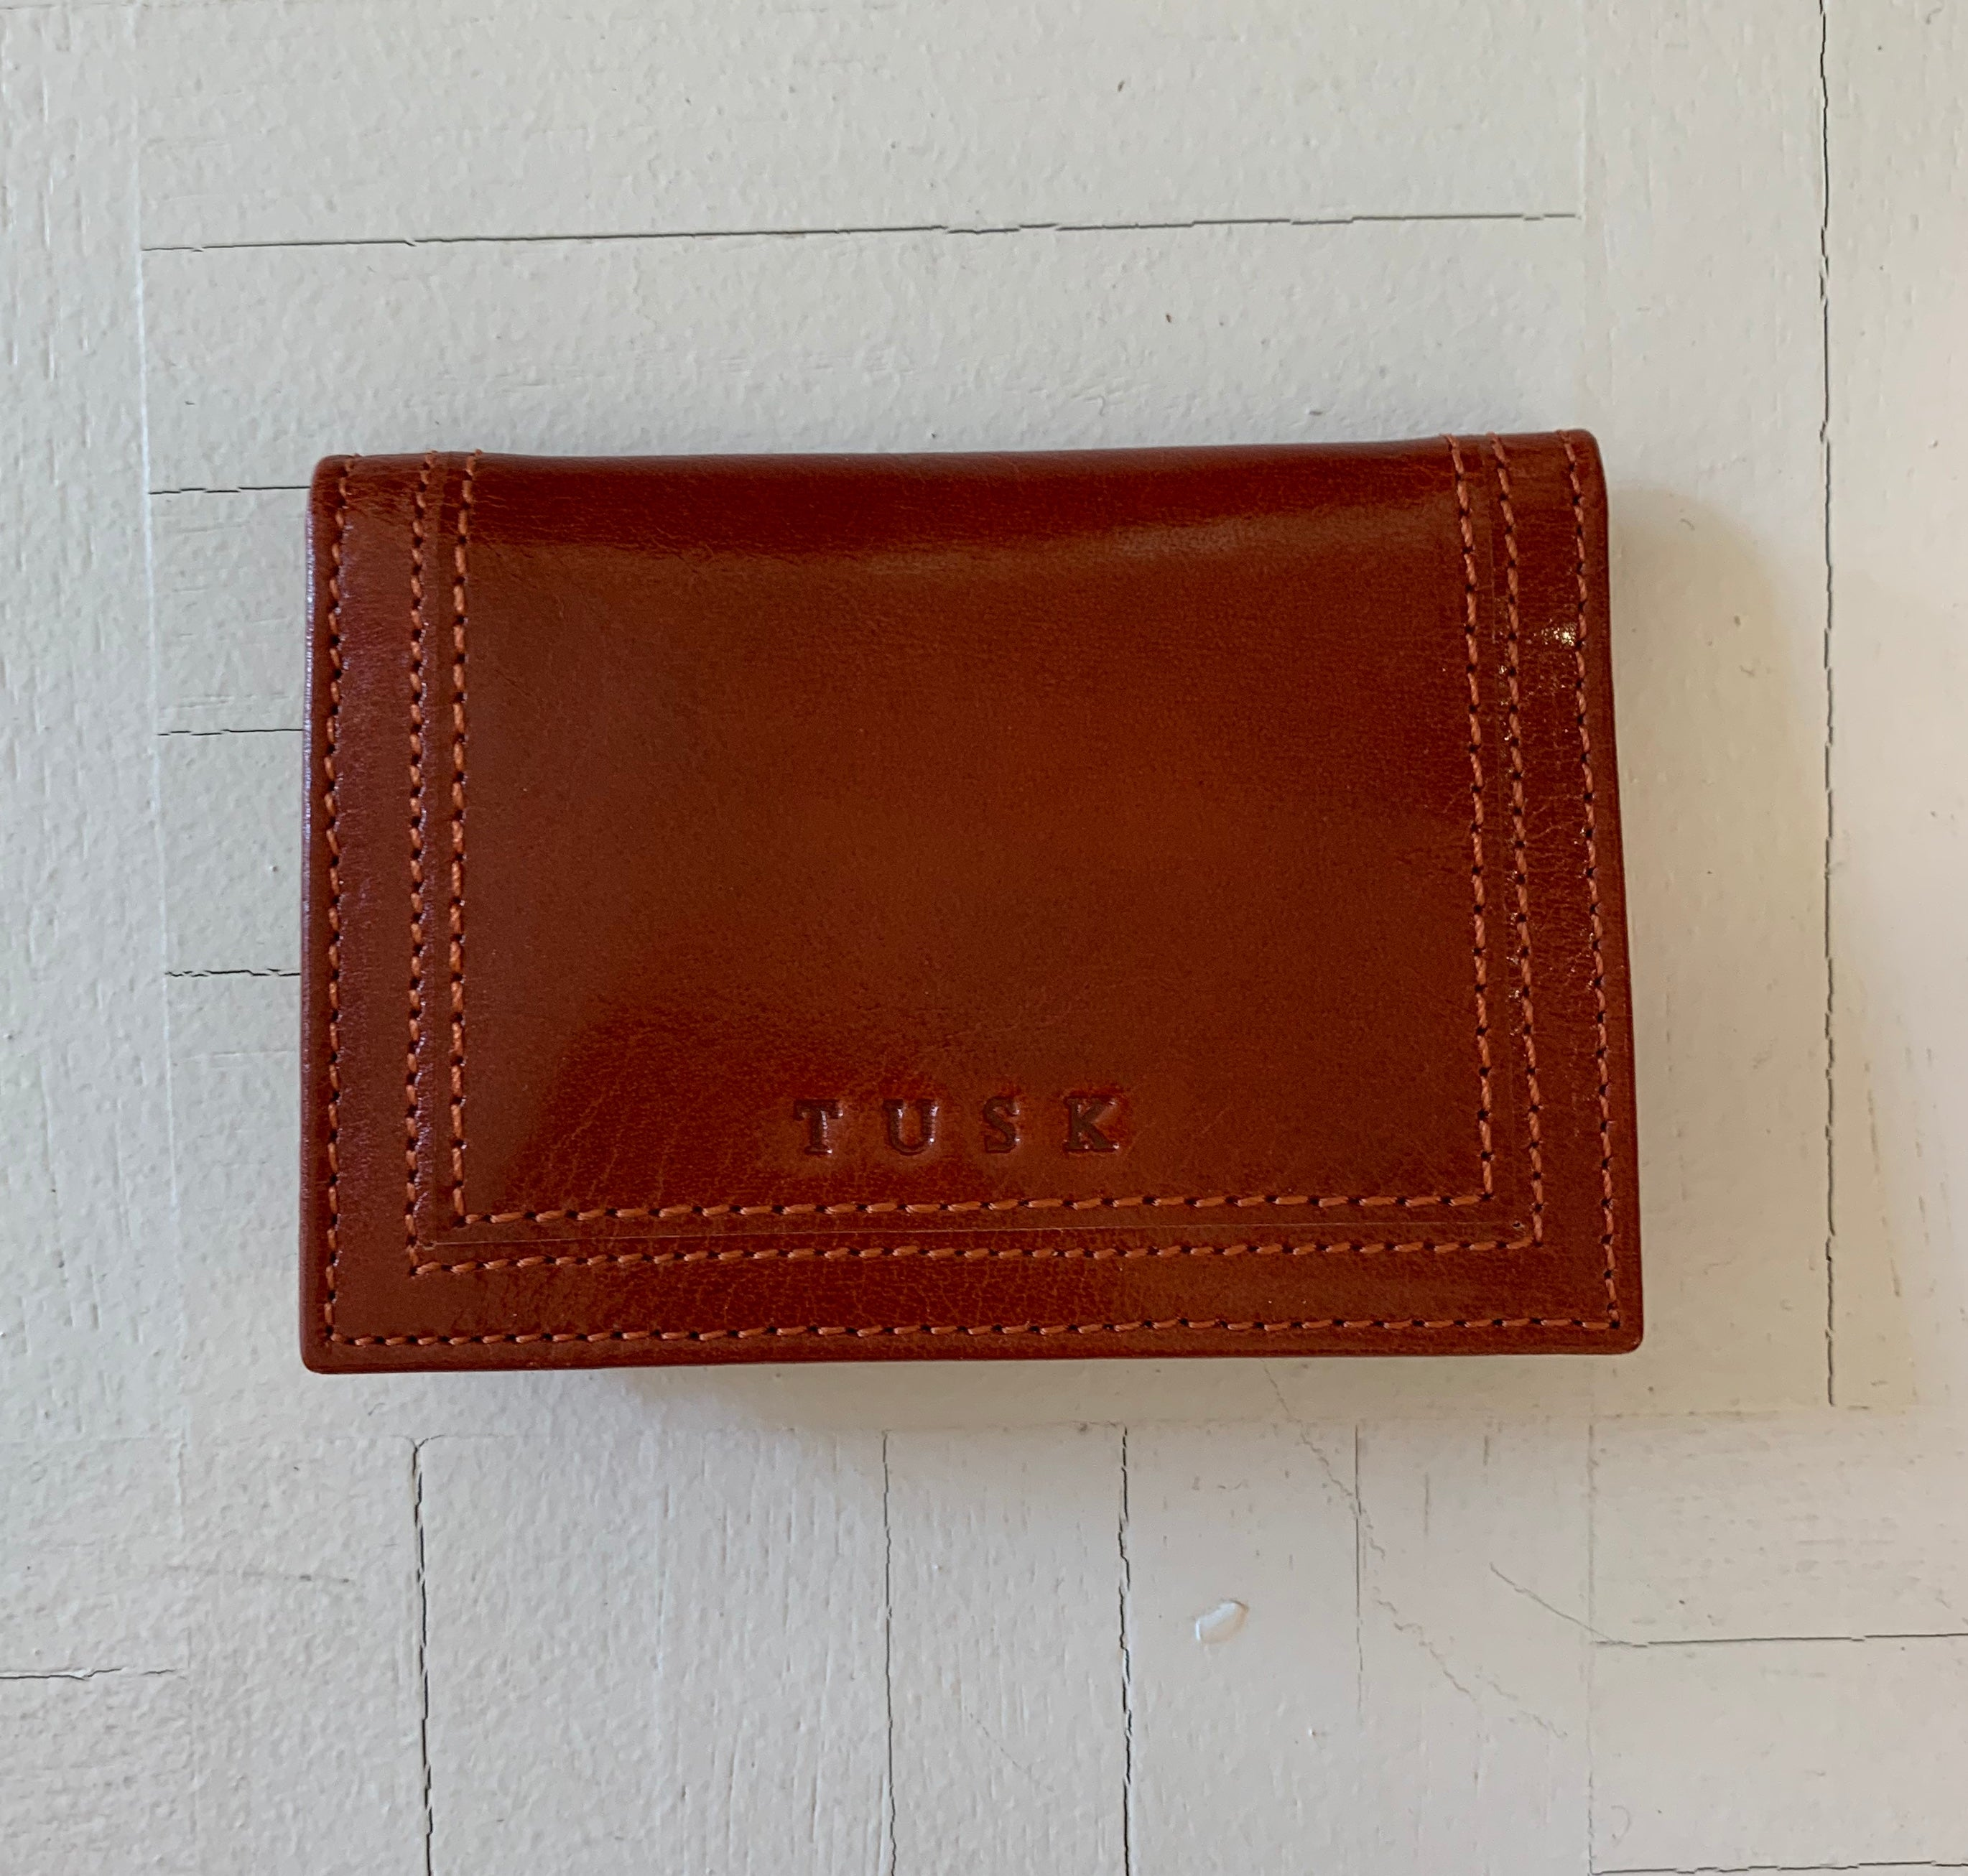 Tusk Gusseted Wallet